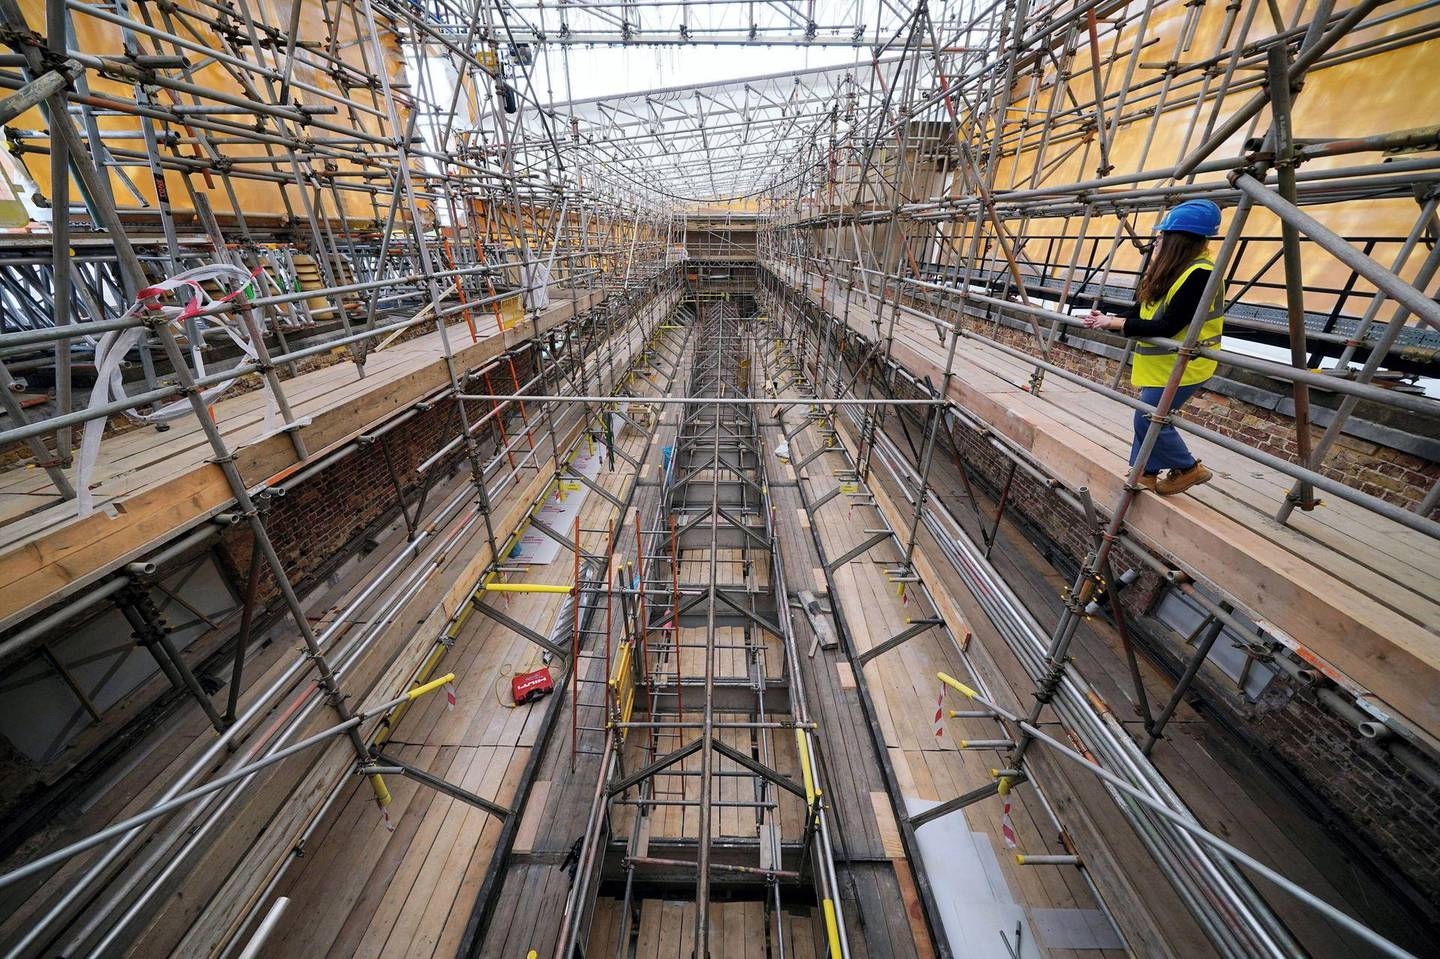 2G4XTMN Building work takes place on the roof of the Picture Gallery at Buckingham Palace in London, part of the 10-year refurbishment programme for the royal residence. Picture date: Monday June 21, 2021.